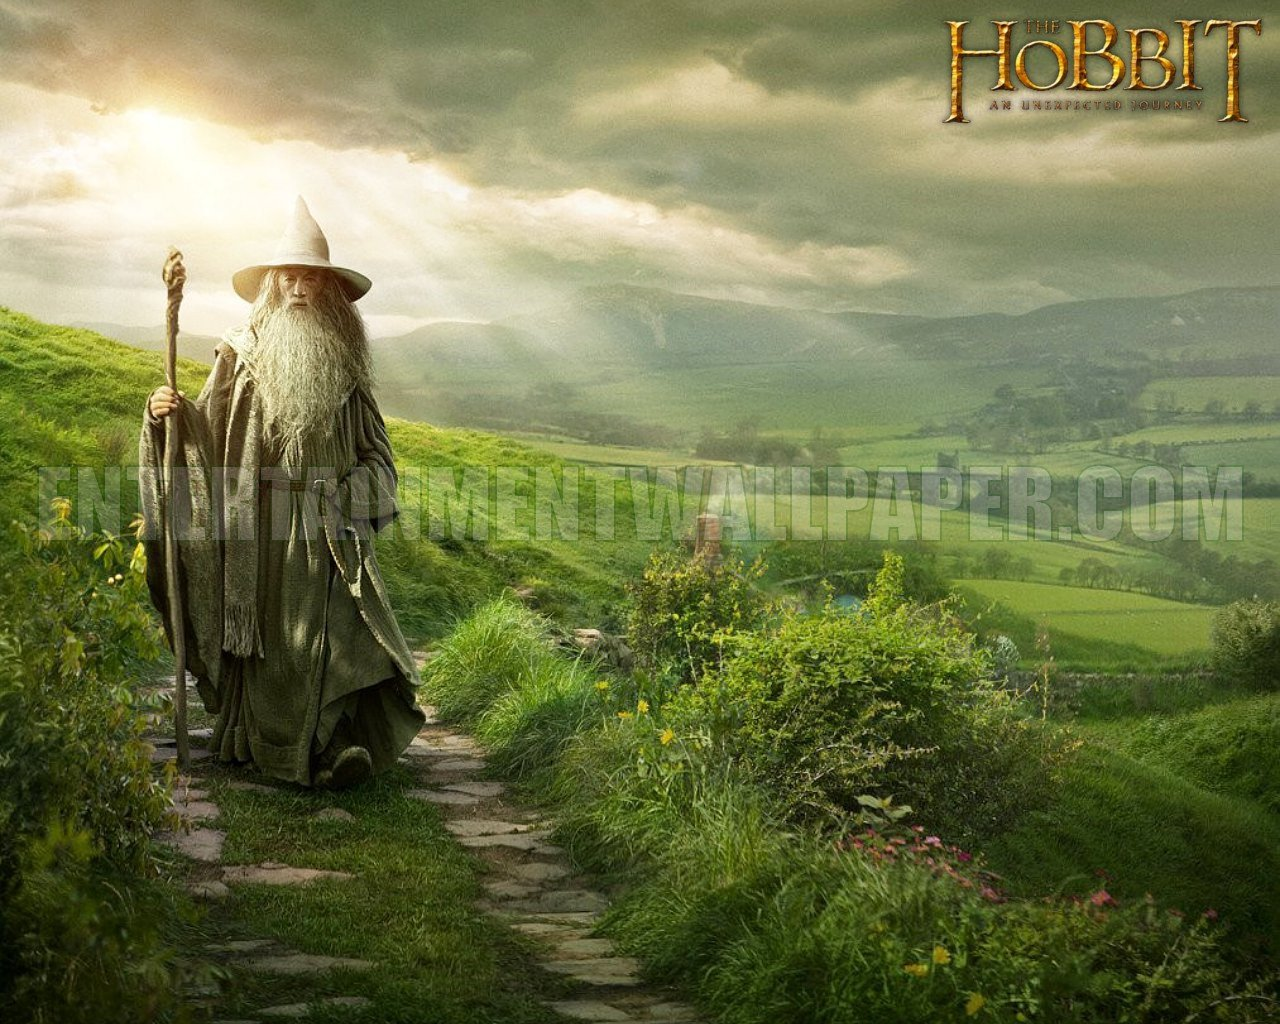 The Hobbit An Unexpected Journey Wallpaper   Original size download 1280x1024